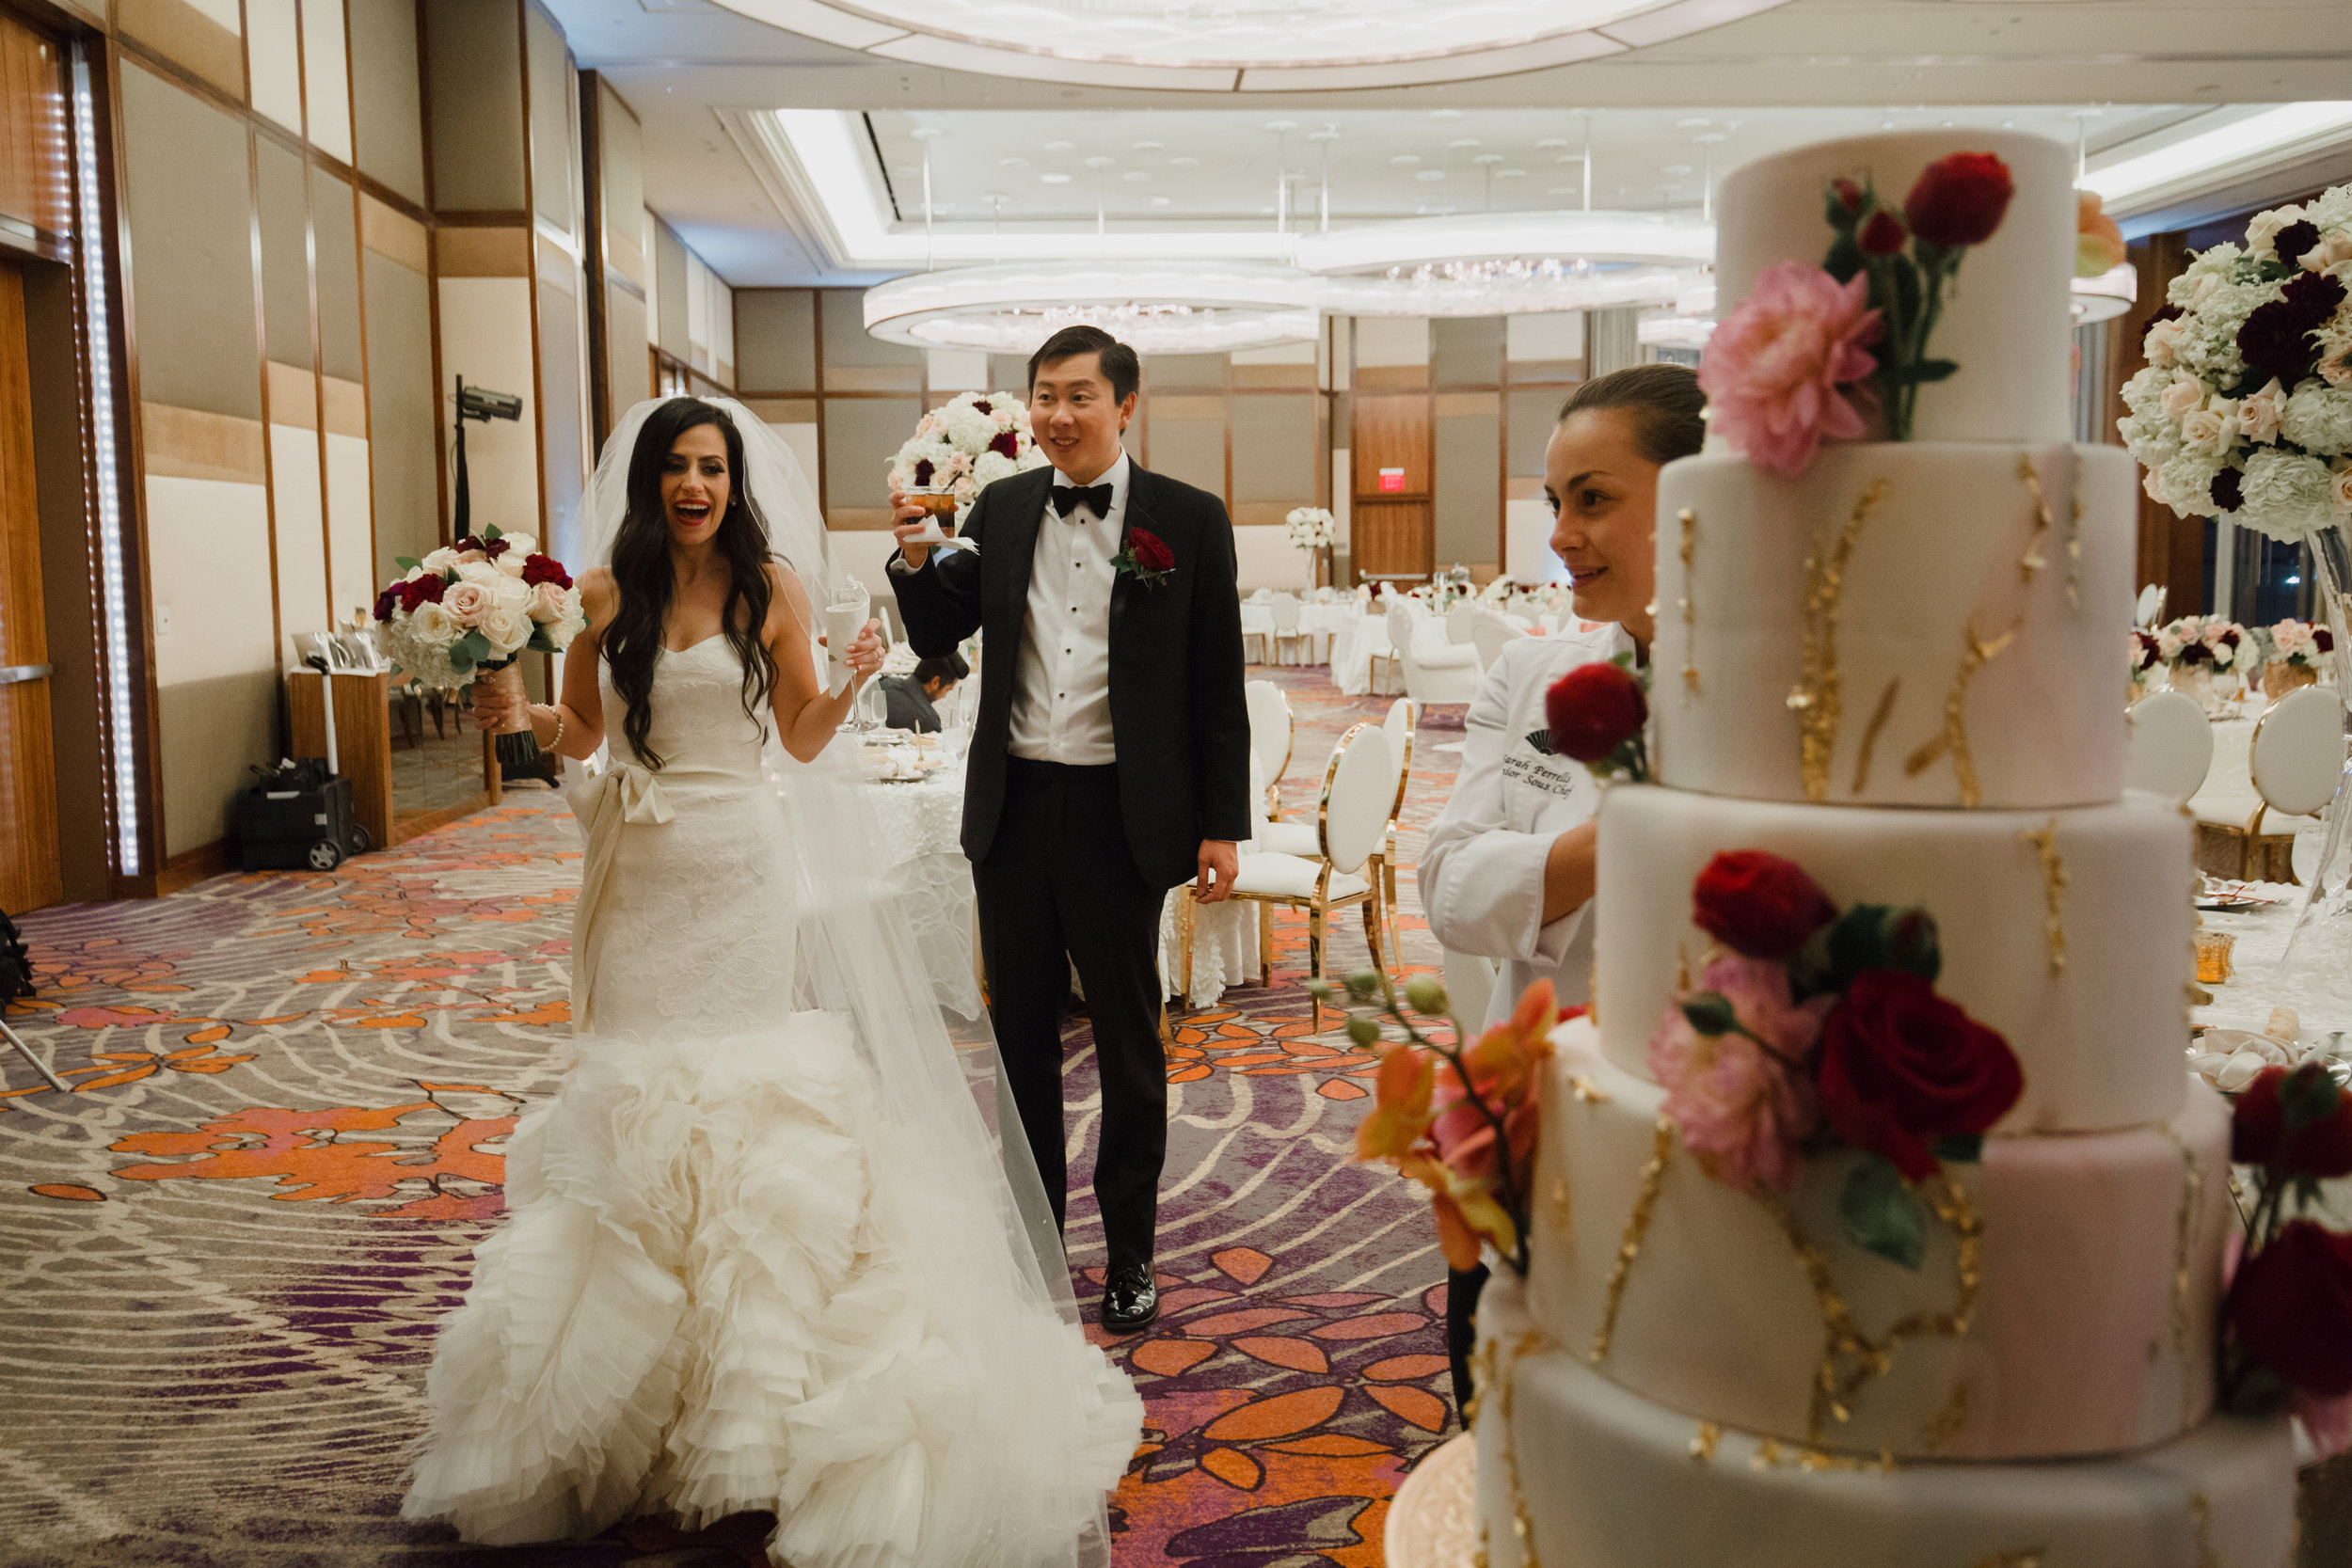 Wedding Cake Reveal.Luxury wedding at the Mandarin Oriental with a color scheme of white, blush, and pops of wine red produced by Las Vegas Wedding Planner Andrea Eppolito with photos by Stephen Salazar Photography.